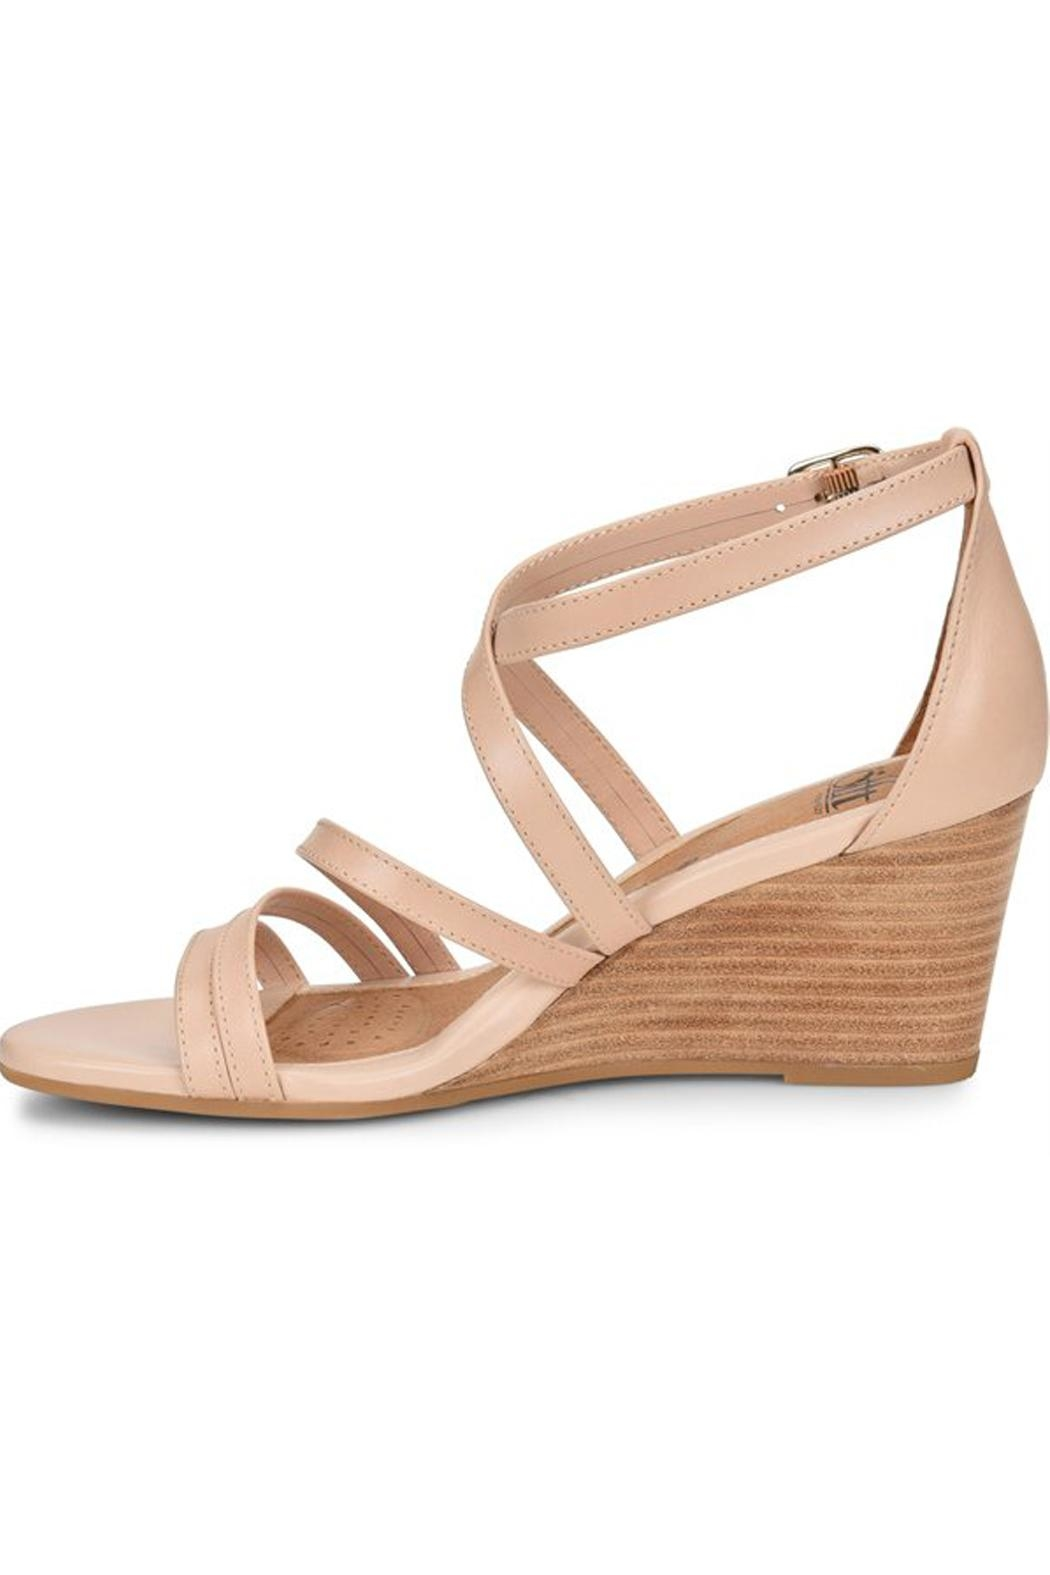 Sofft Mecina Blush Wedge - Main Image